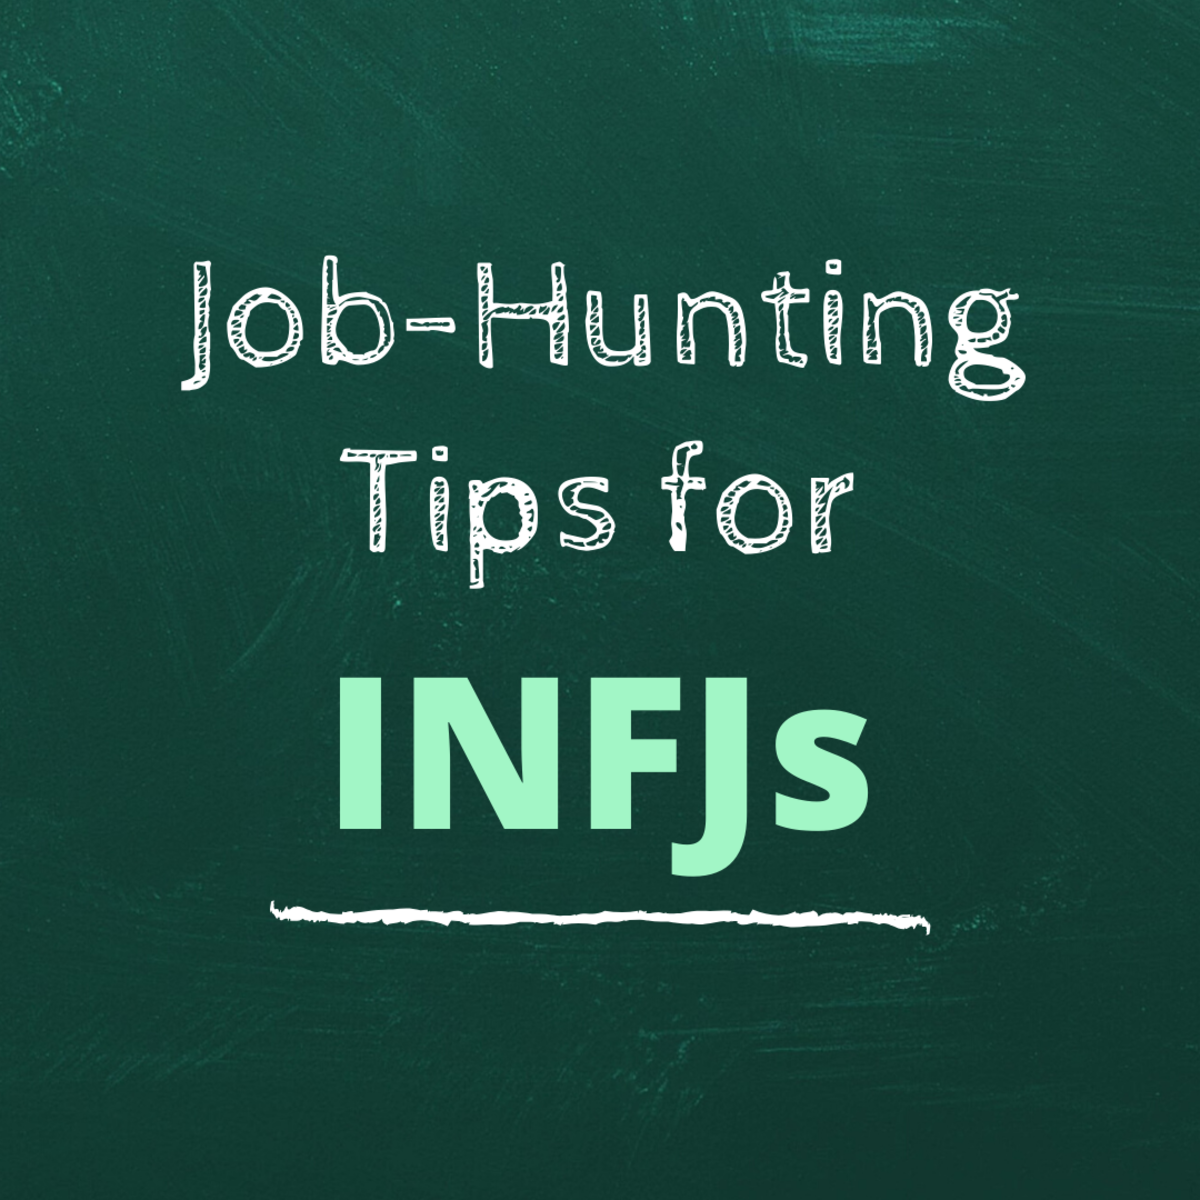 INFJ Jobs and Careers: 5 Tips to Find Your Fit